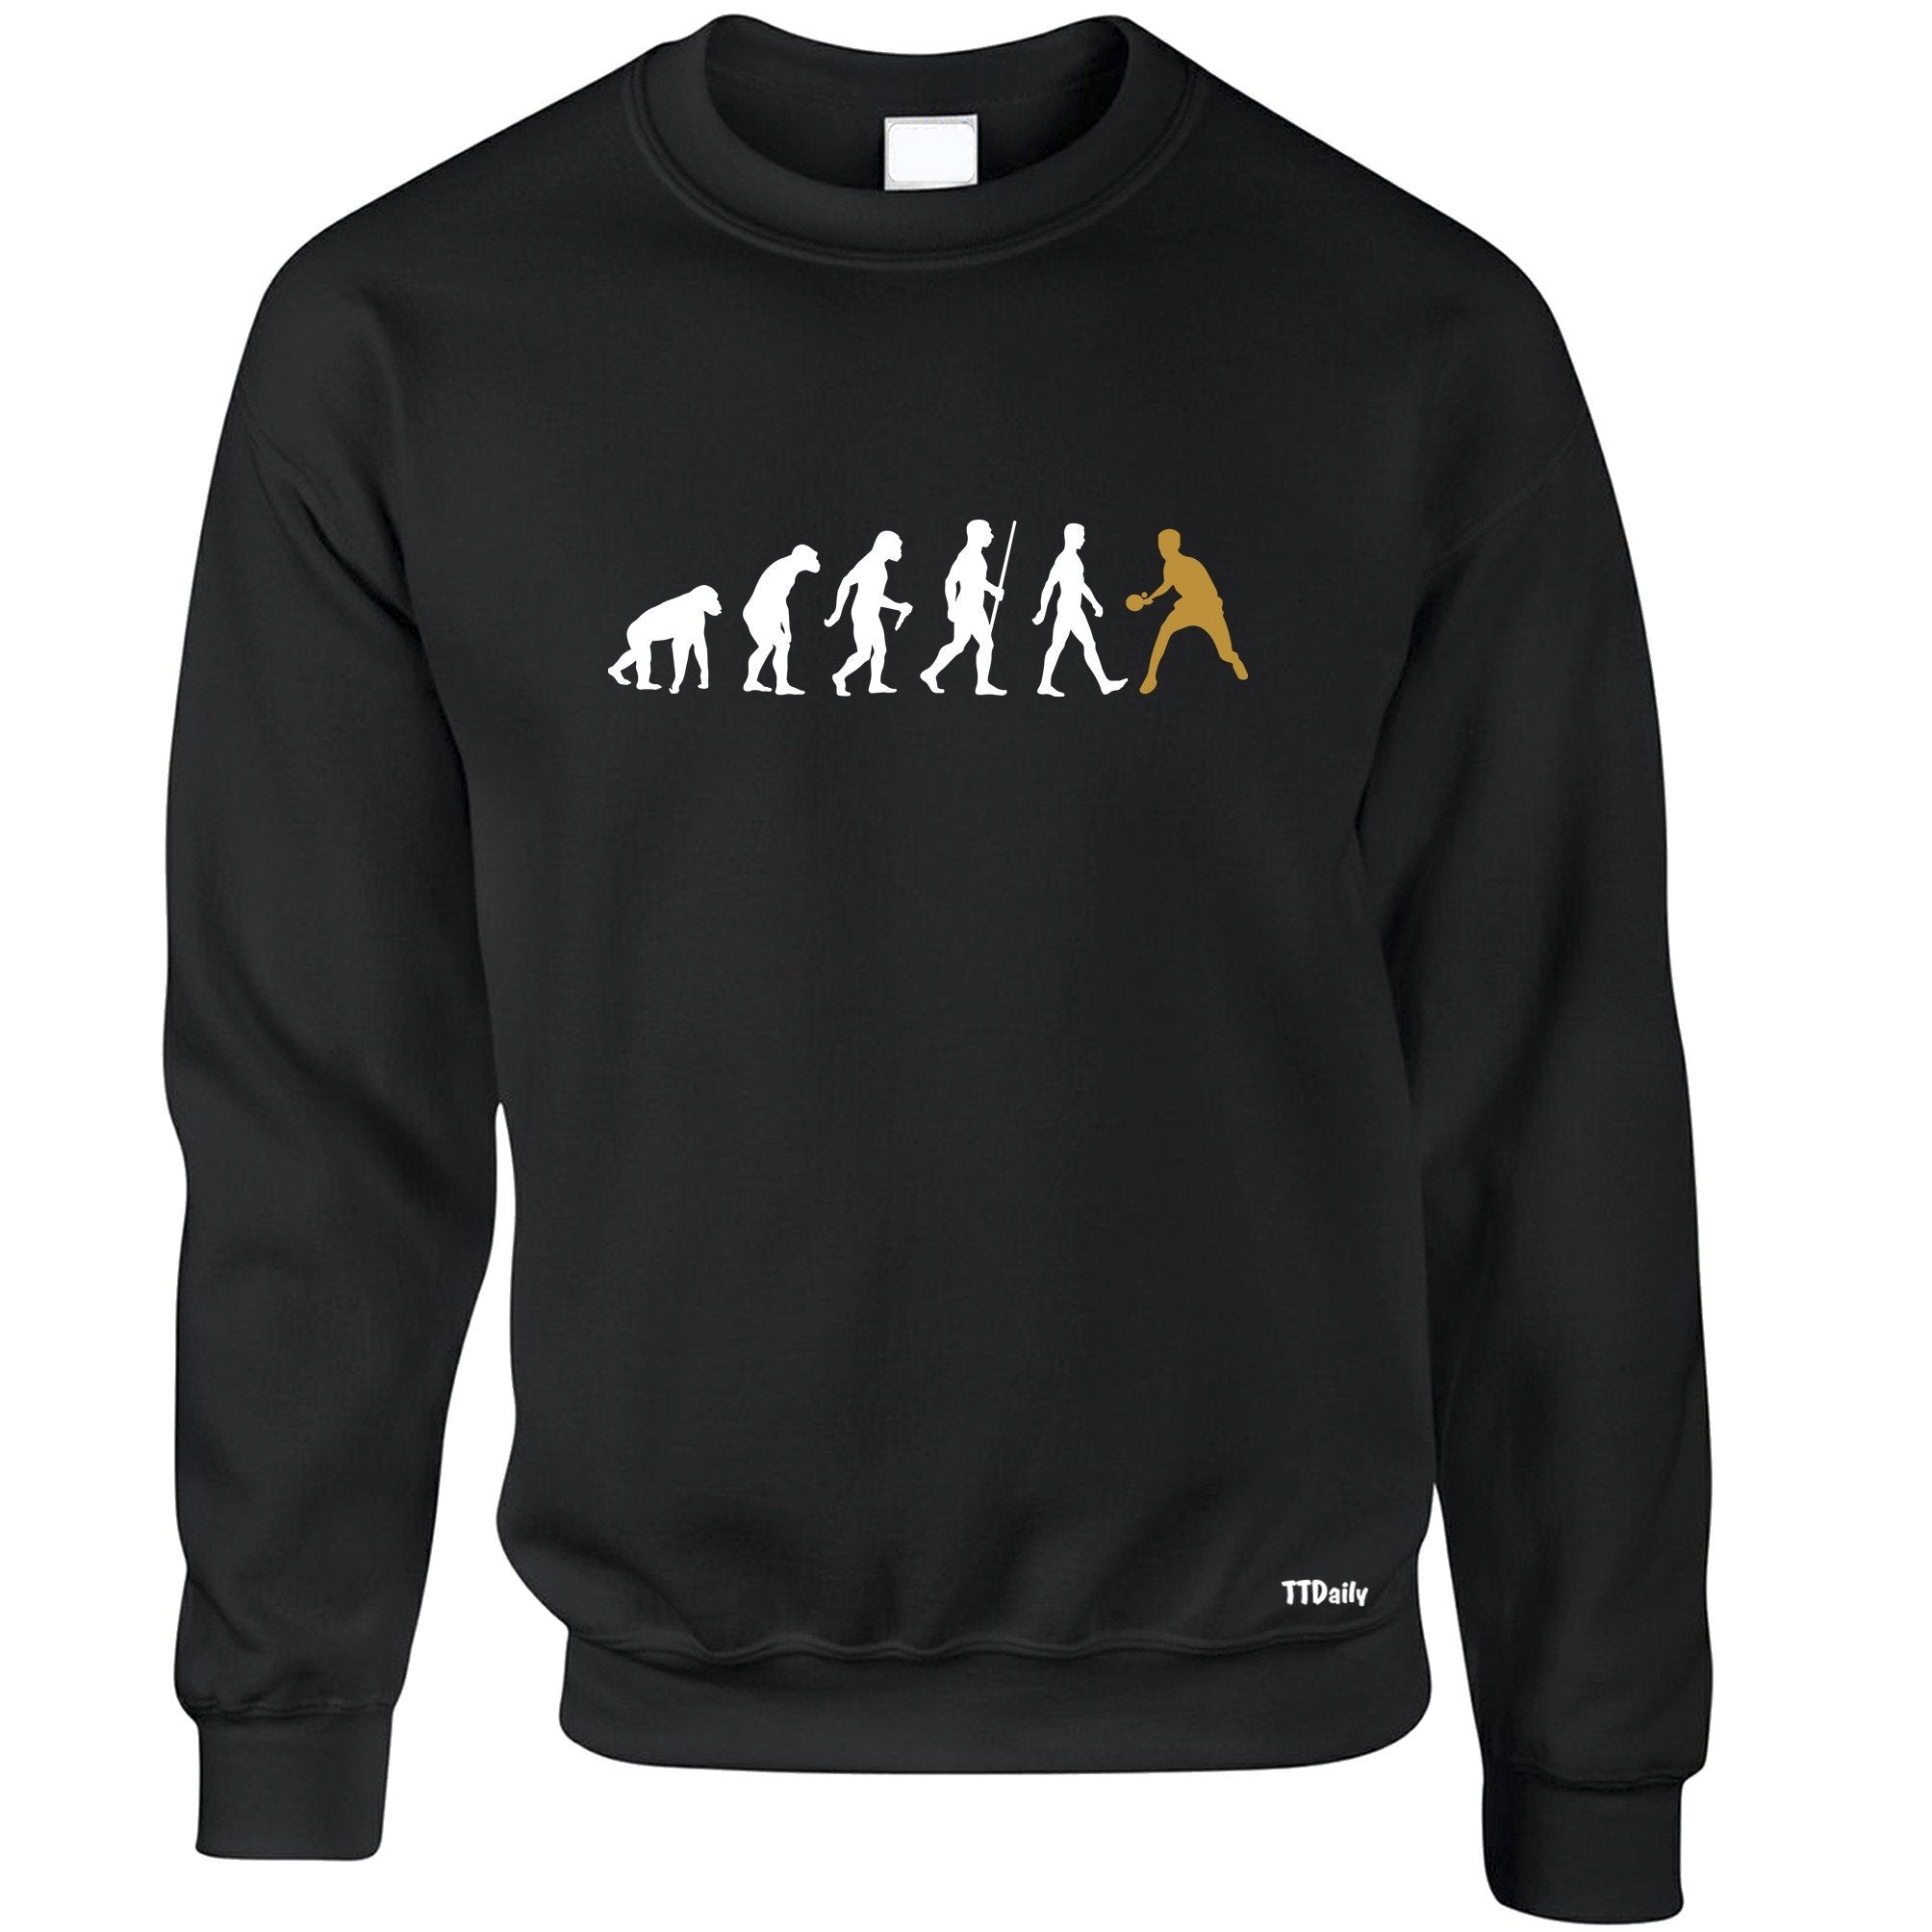 Table Tennis Jumper The Evolution Of Man Gold Sweatshirt Sweater